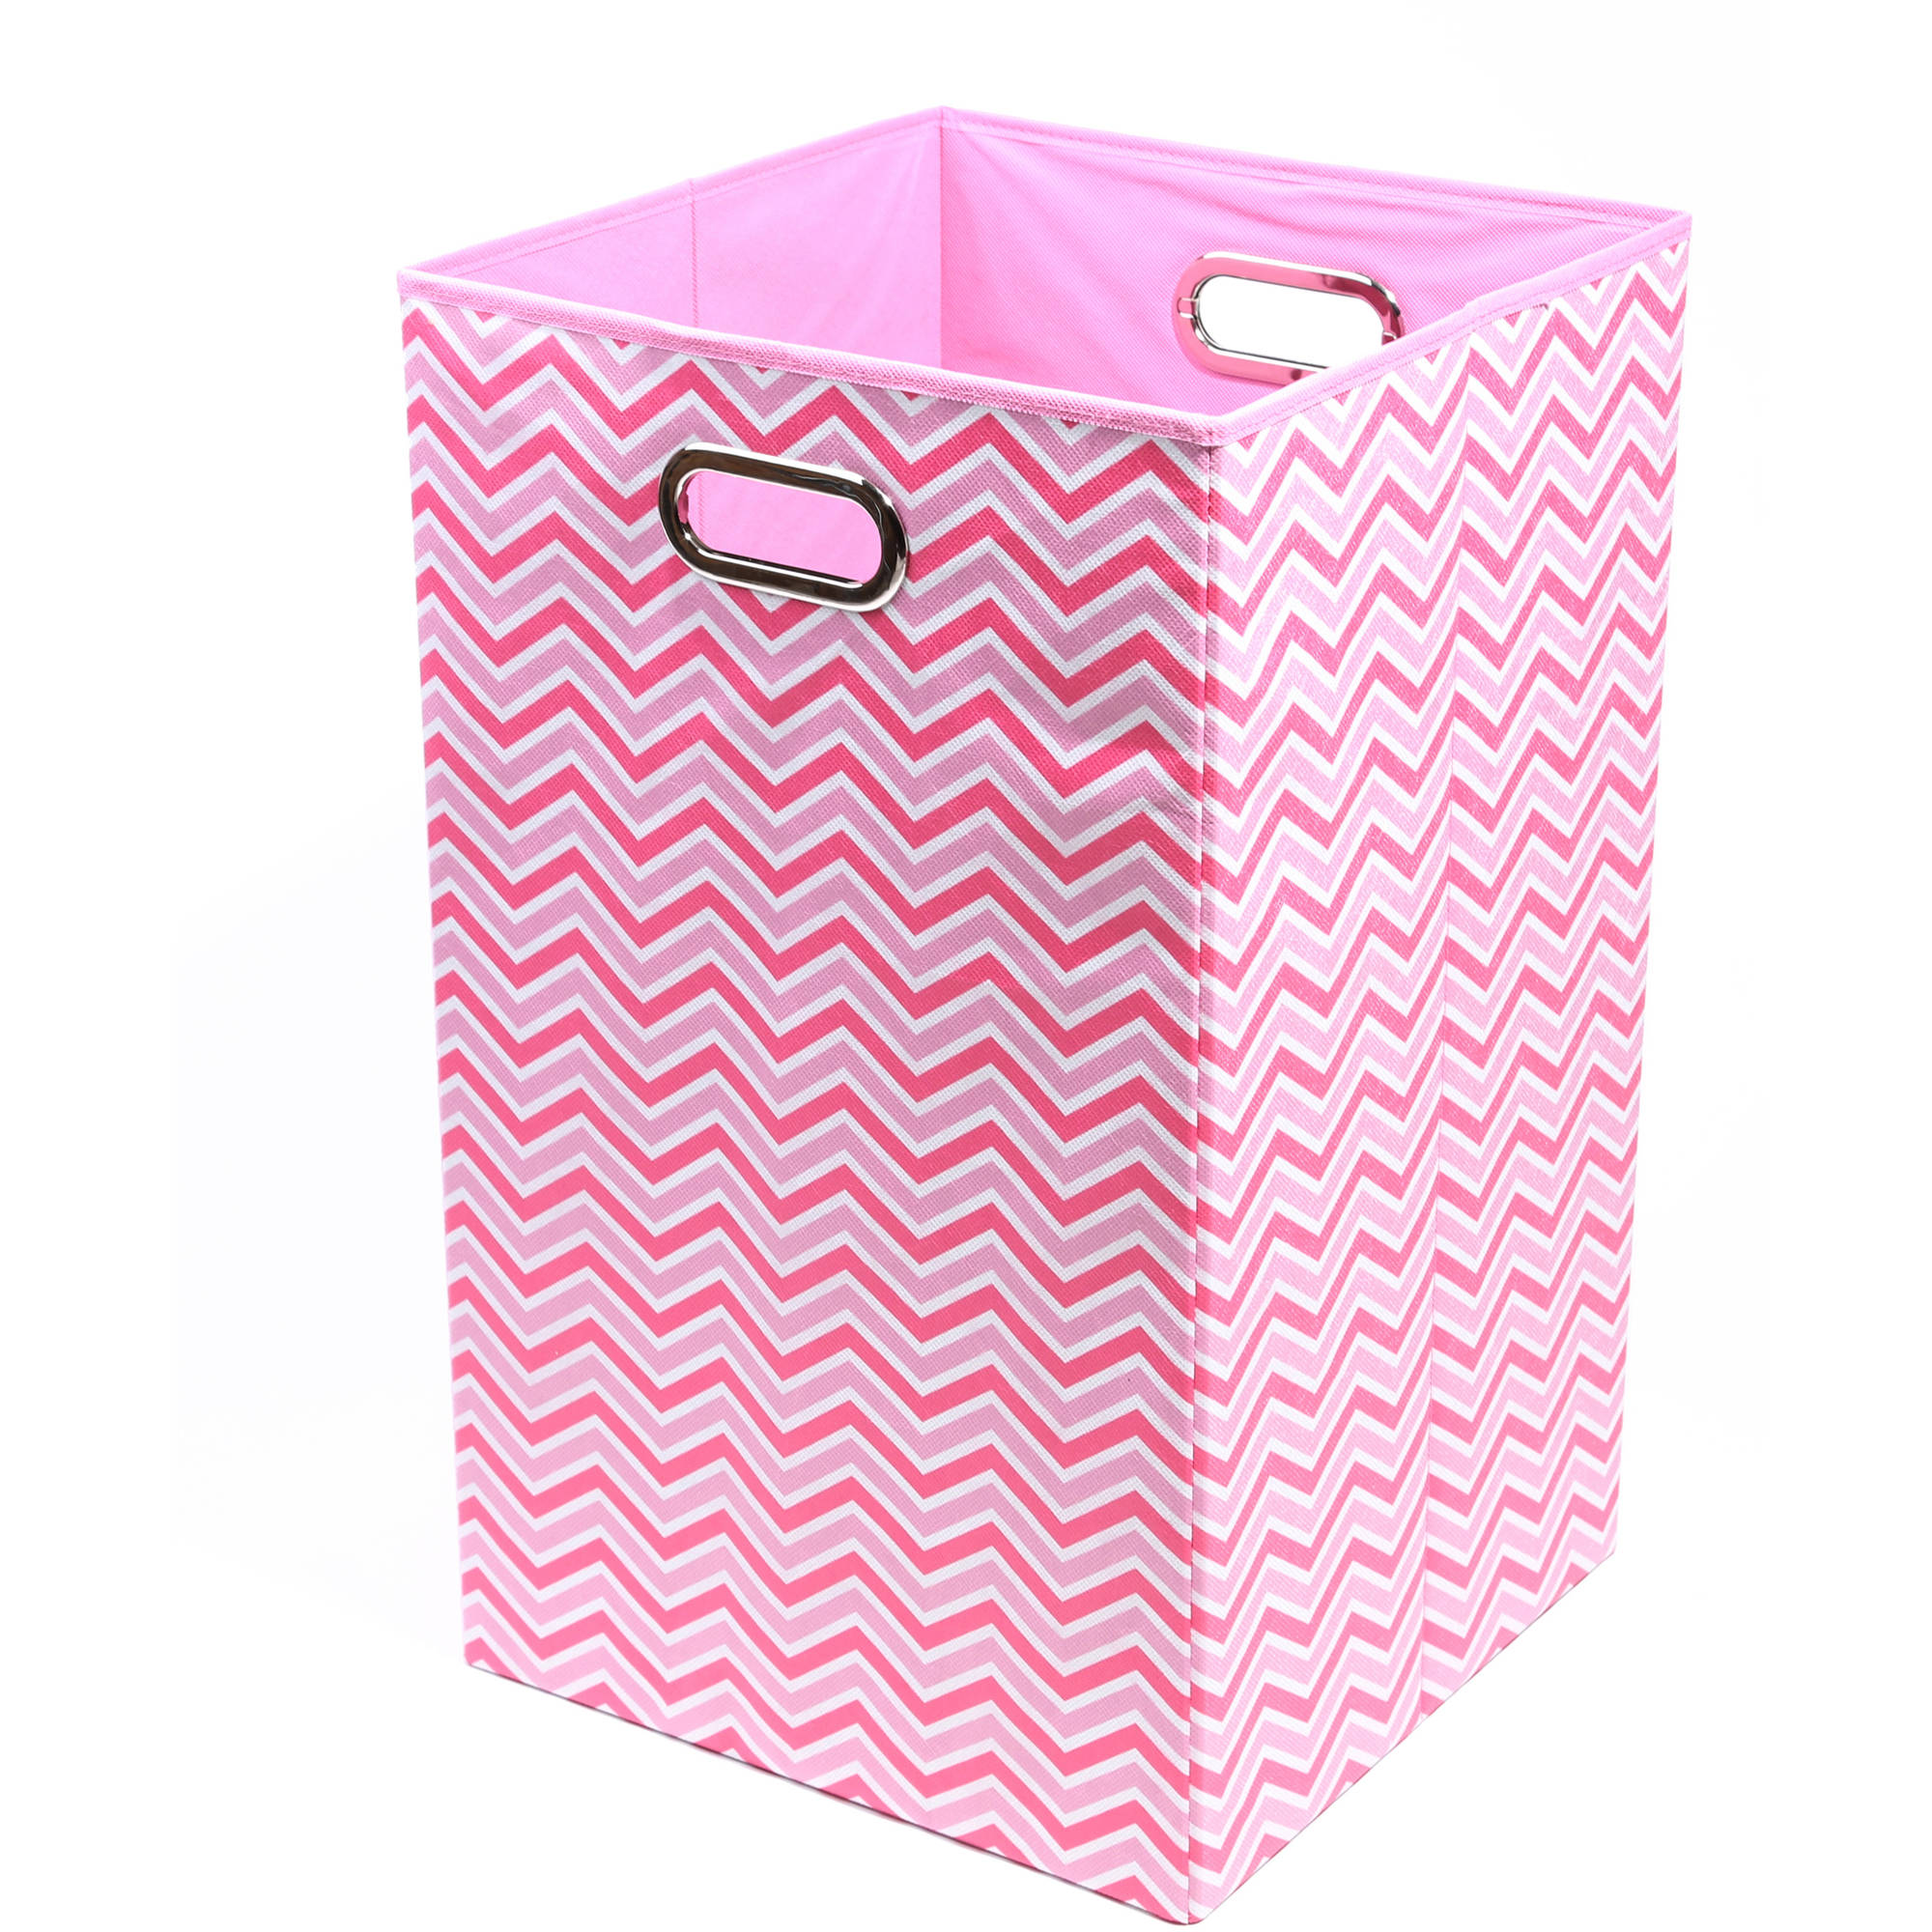 Modern Littles Rose Folding Laundry Basket (Choose Your Pattern)